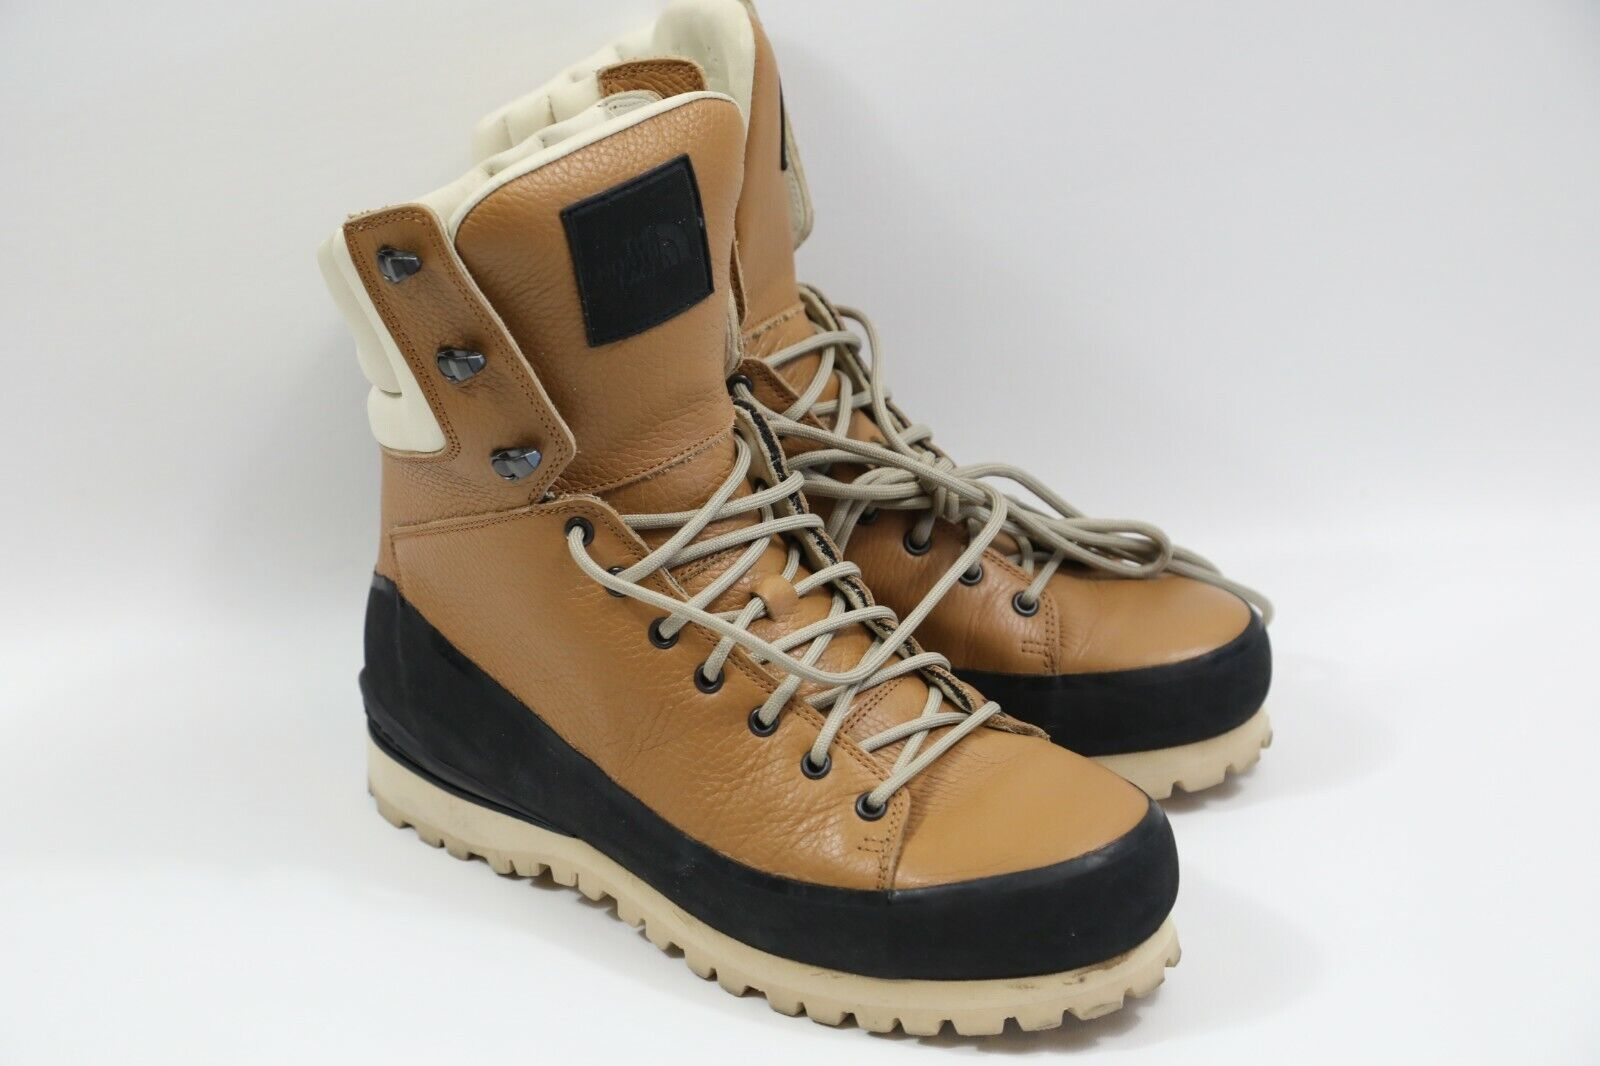 225 The North face Men's Cryos Hikers Boots Size 11 MADE IN ITALY